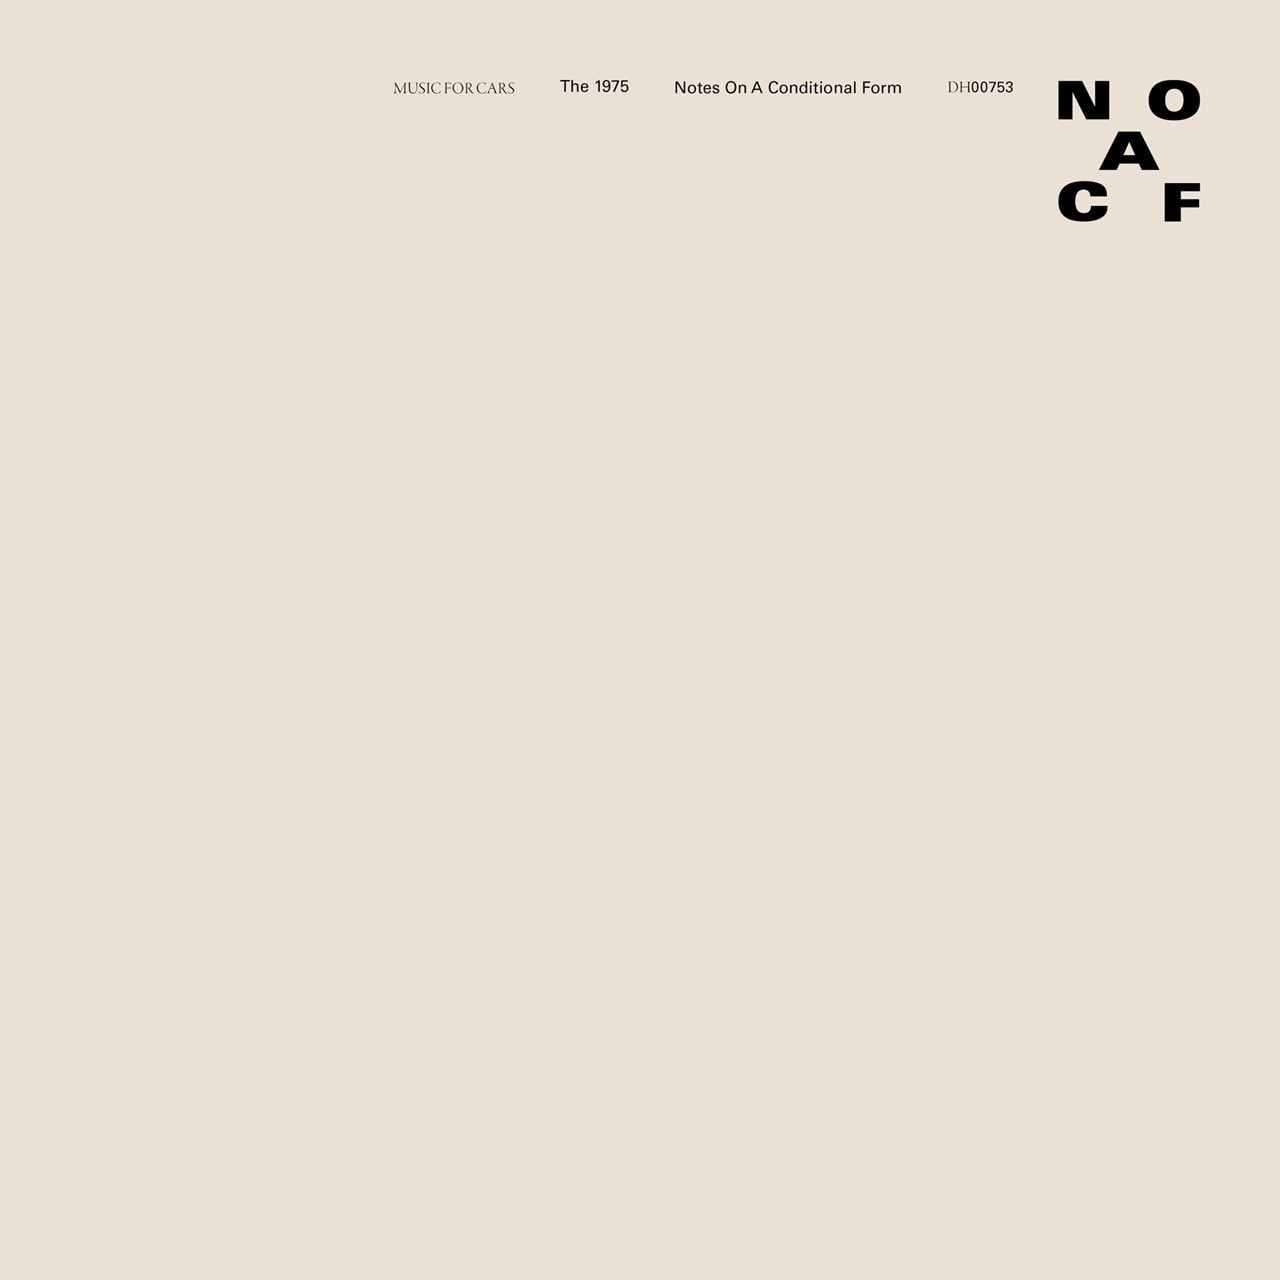 Notes On a Conditional Form - Limited Edition White Vinyl - 1